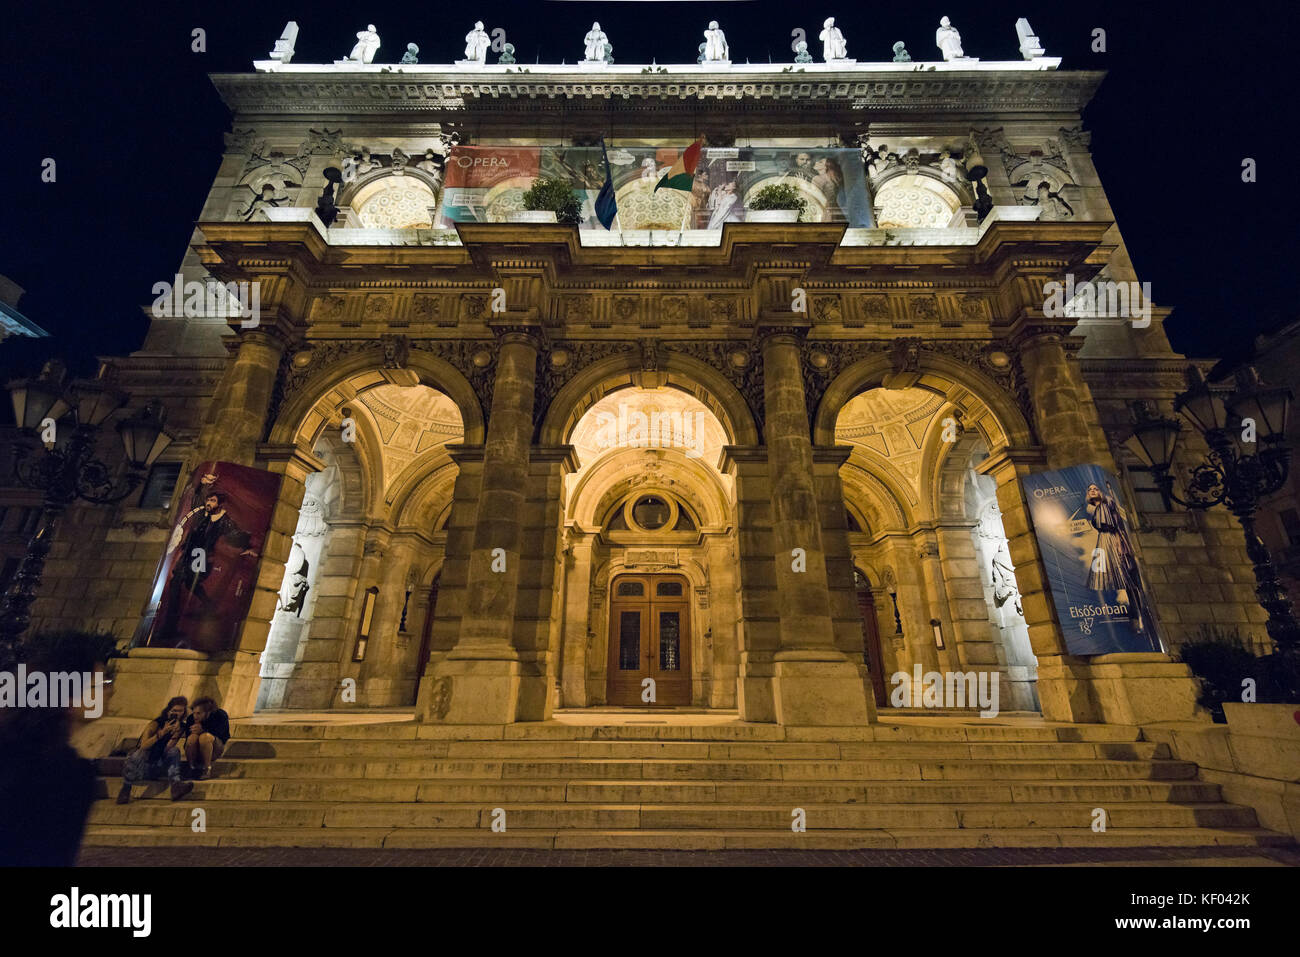 Horizontal view of the Hungarian State Opera House in Budapest at night. - Stock Image